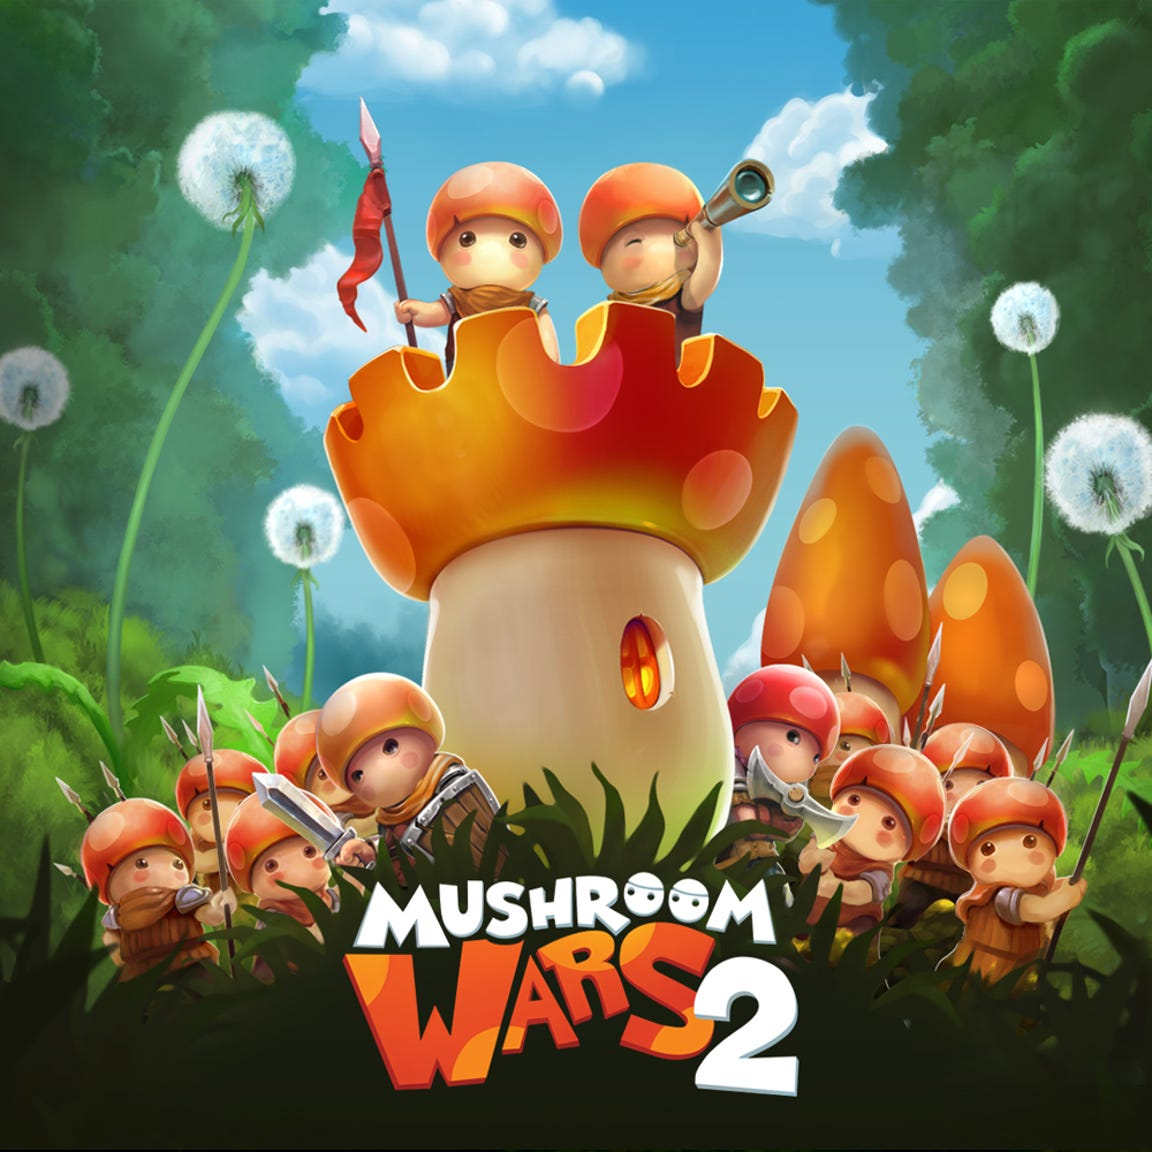 Mushroom Wars 2 is populated by, um, mushrooms.